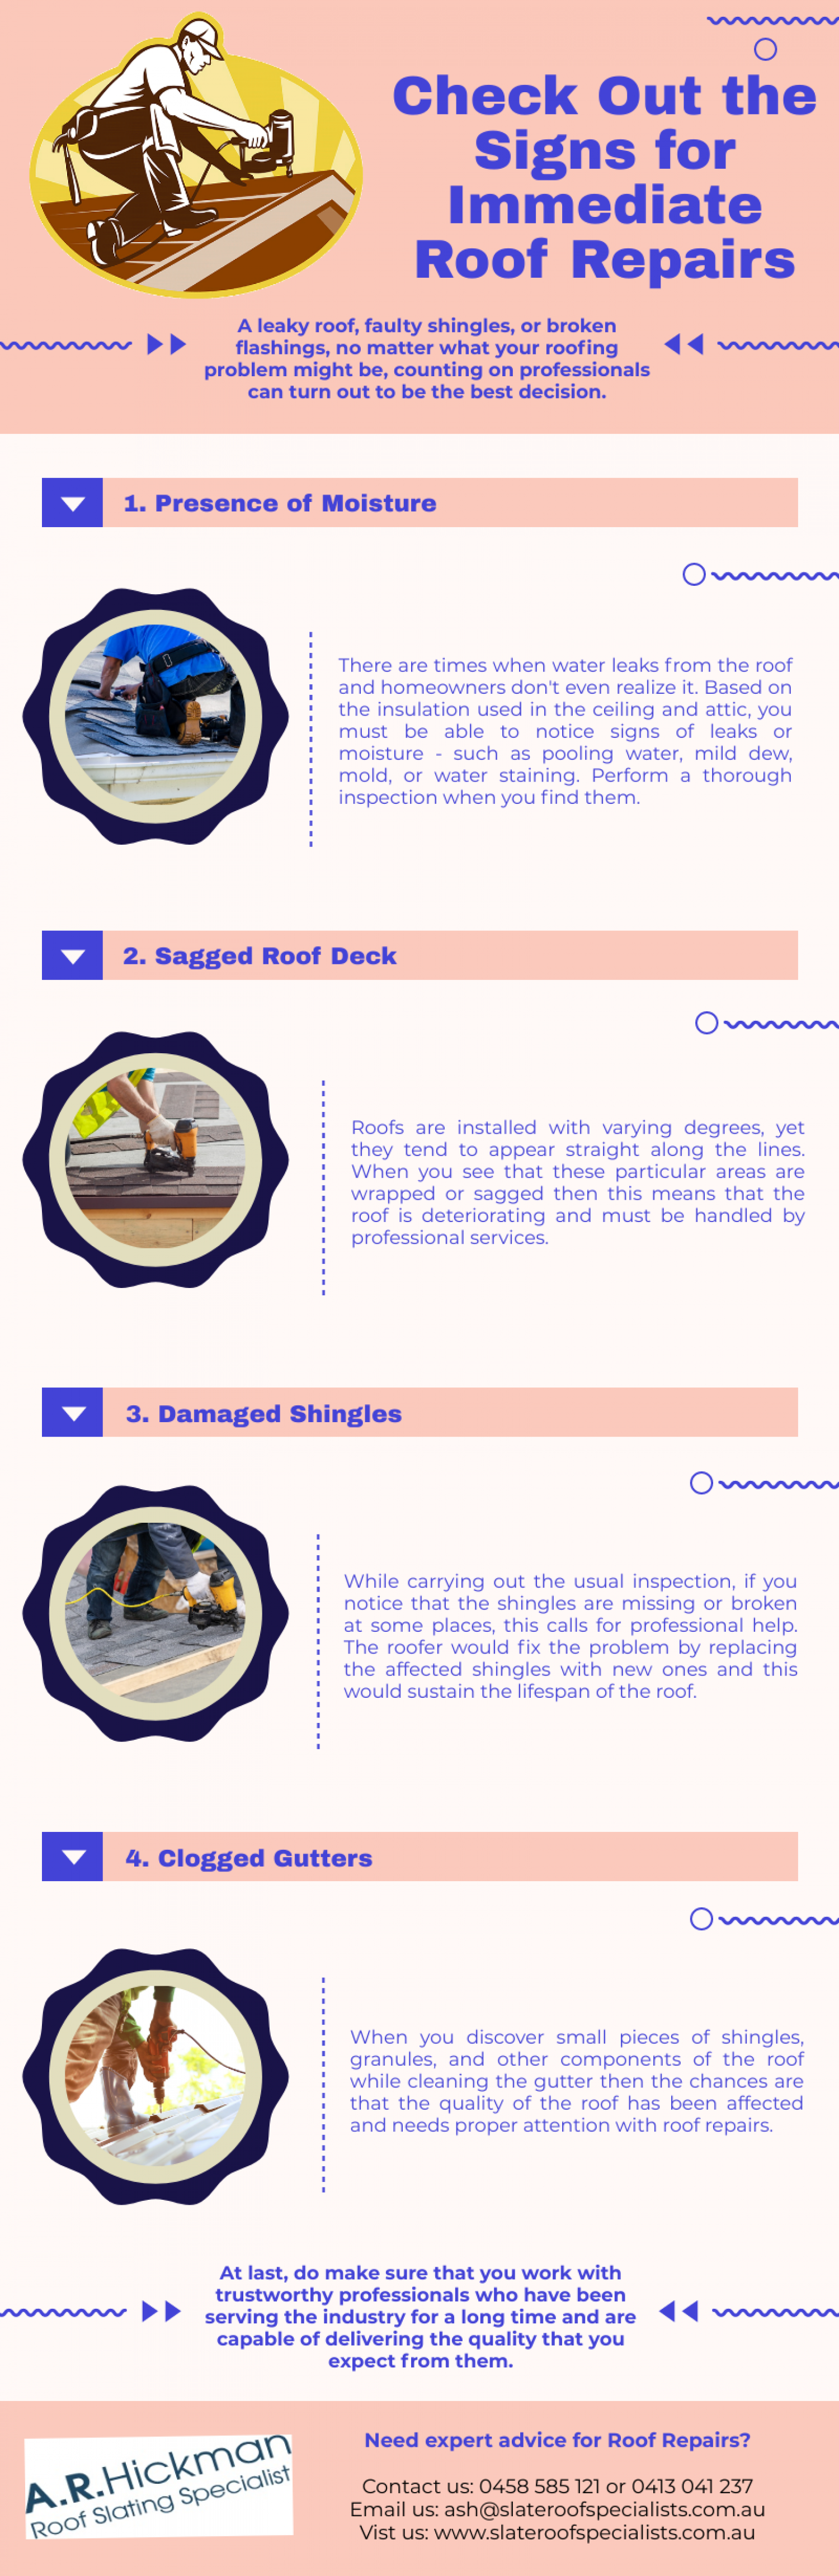 Check Out the Signs for Immediate Roof Repairs Infographic